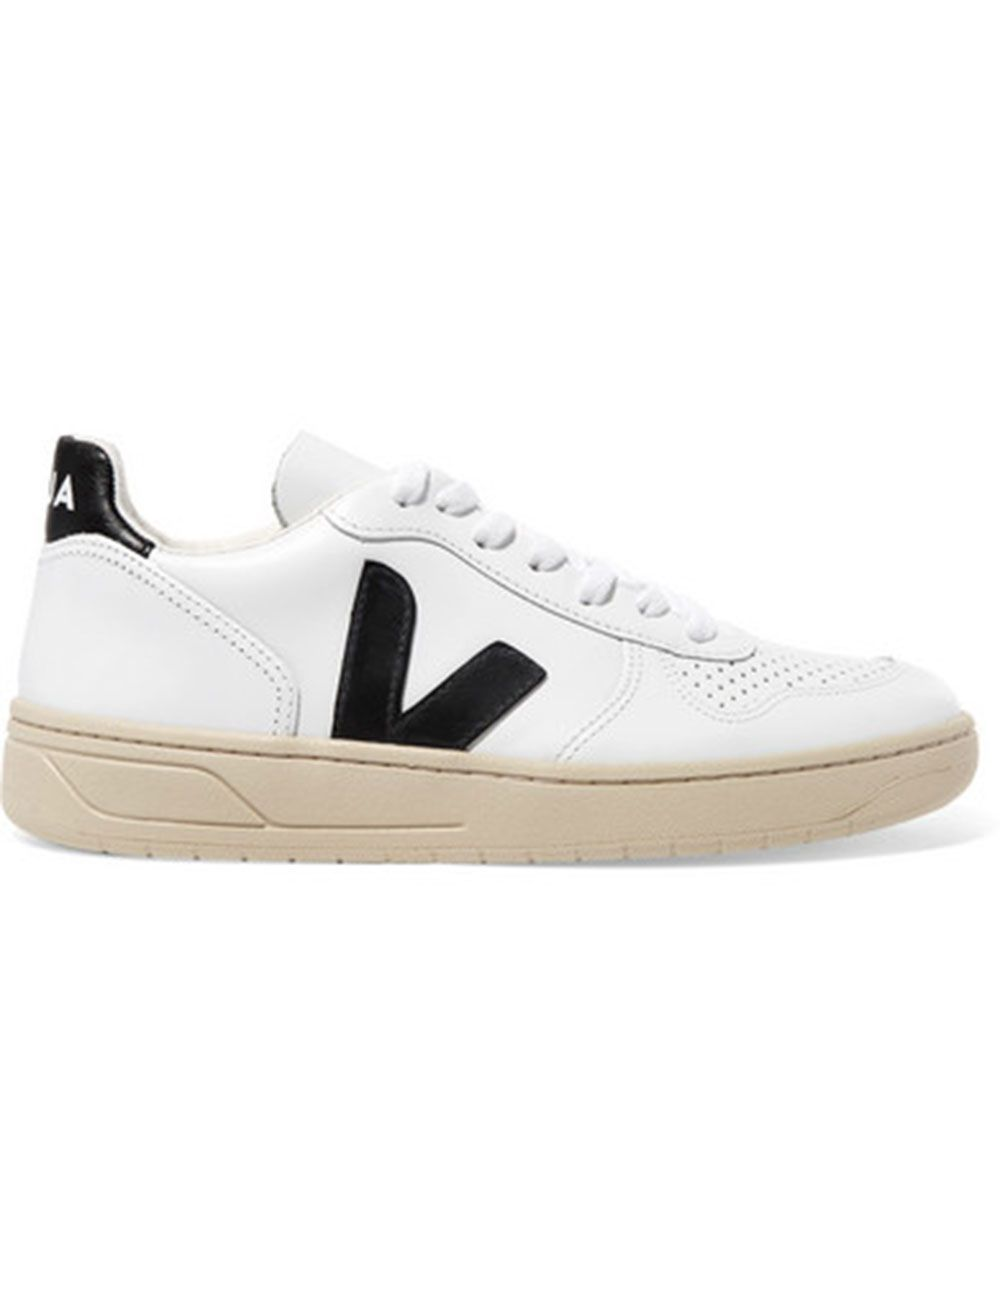 best fashion trainers 2019